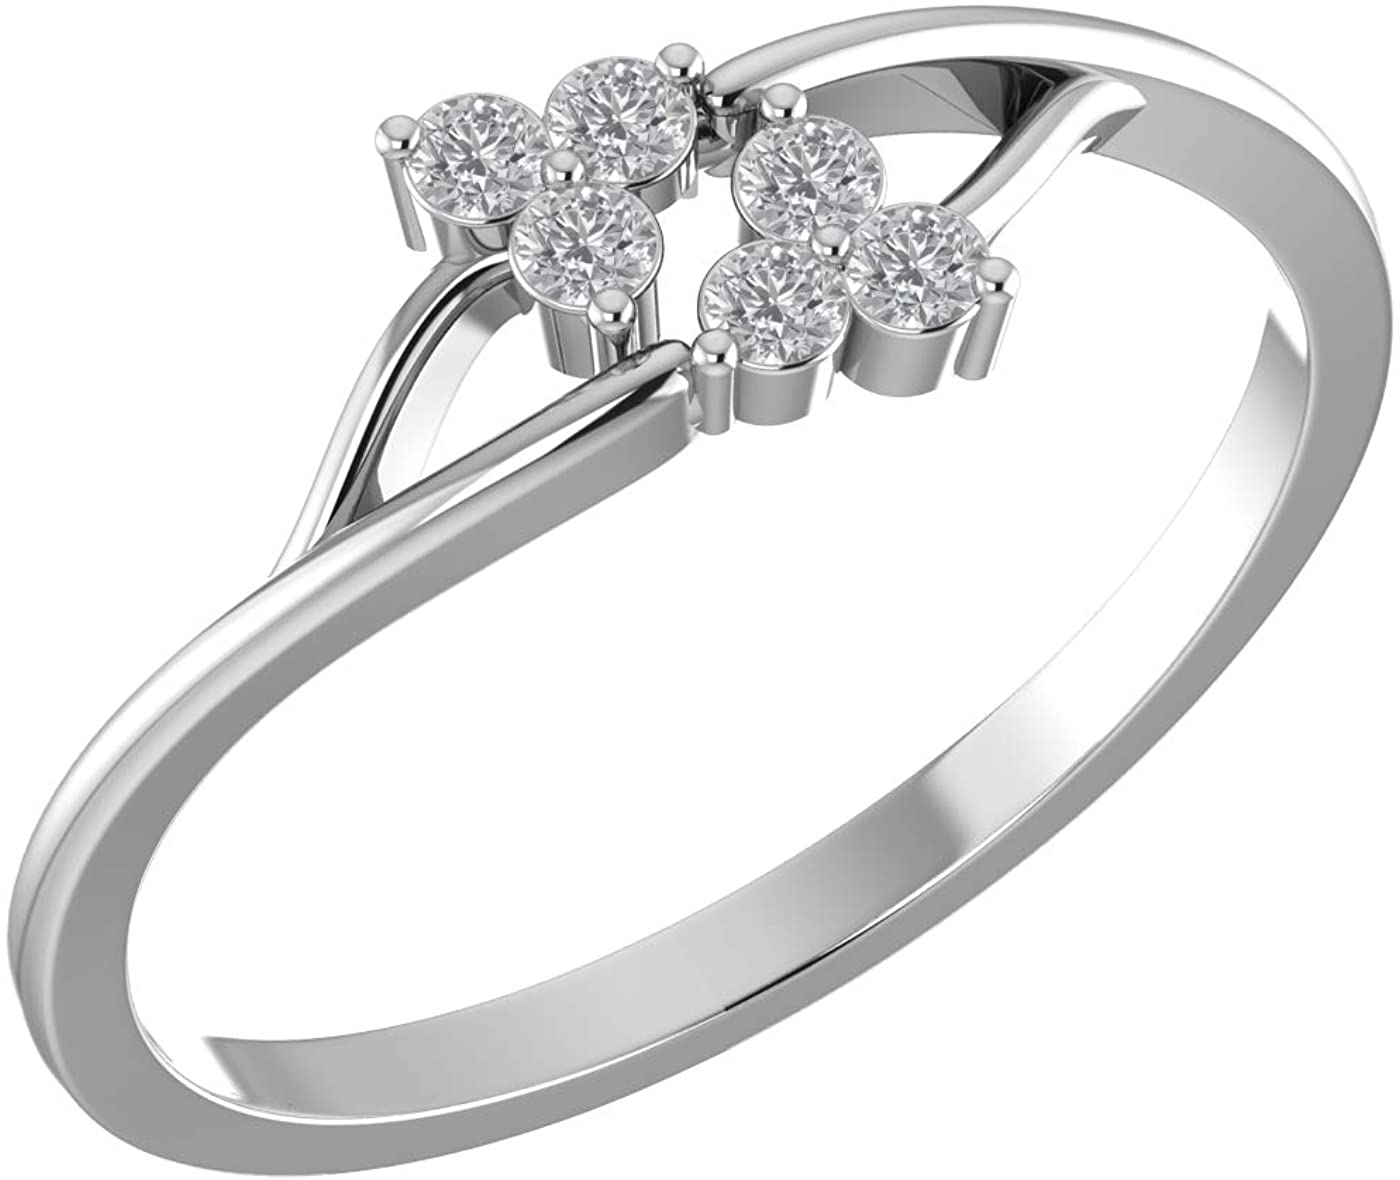 Amayra Diamond Ring 0.13 CTW-6 Natural Round Stones Set in 925 Sterling Silver- Brilliant Cut- Perfect for Bridal Promise Ring,Anniversary,Daily wear or Parties (Color-GH Clarity-VS-SI)